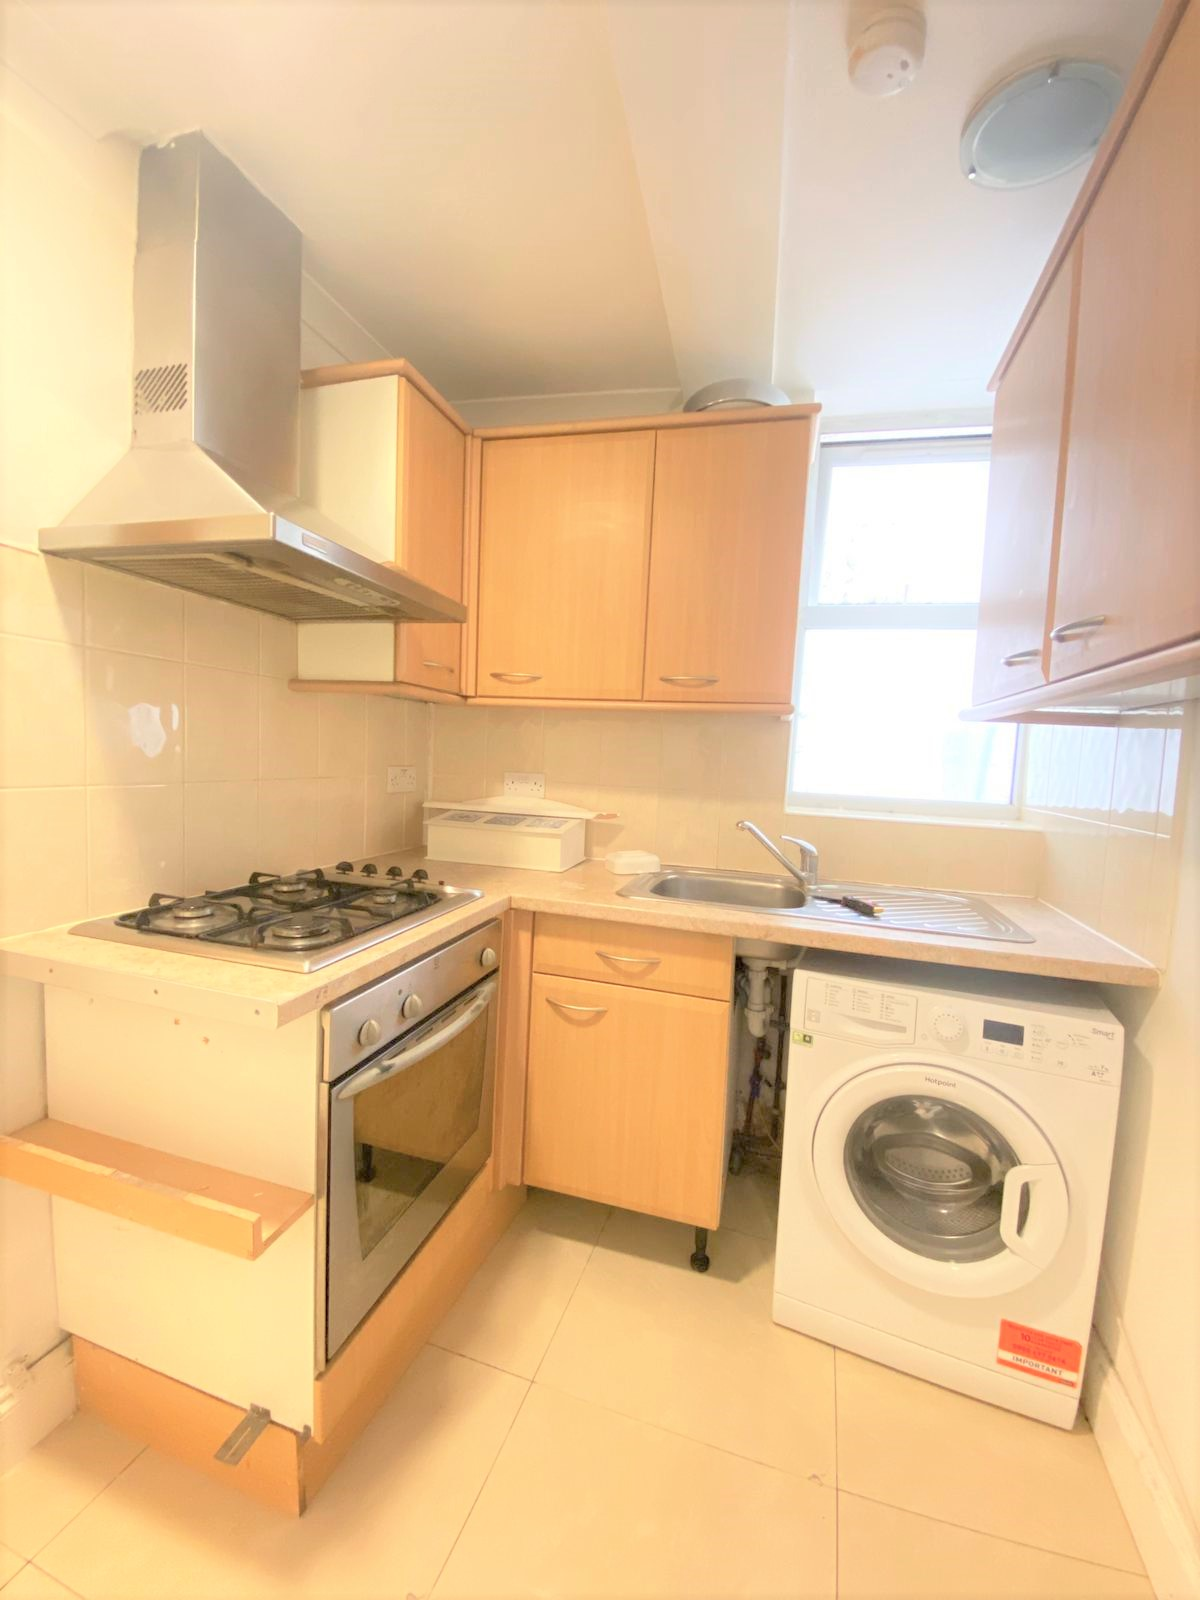 3 bed flat to rent in North End Road, West Kensington, London 4